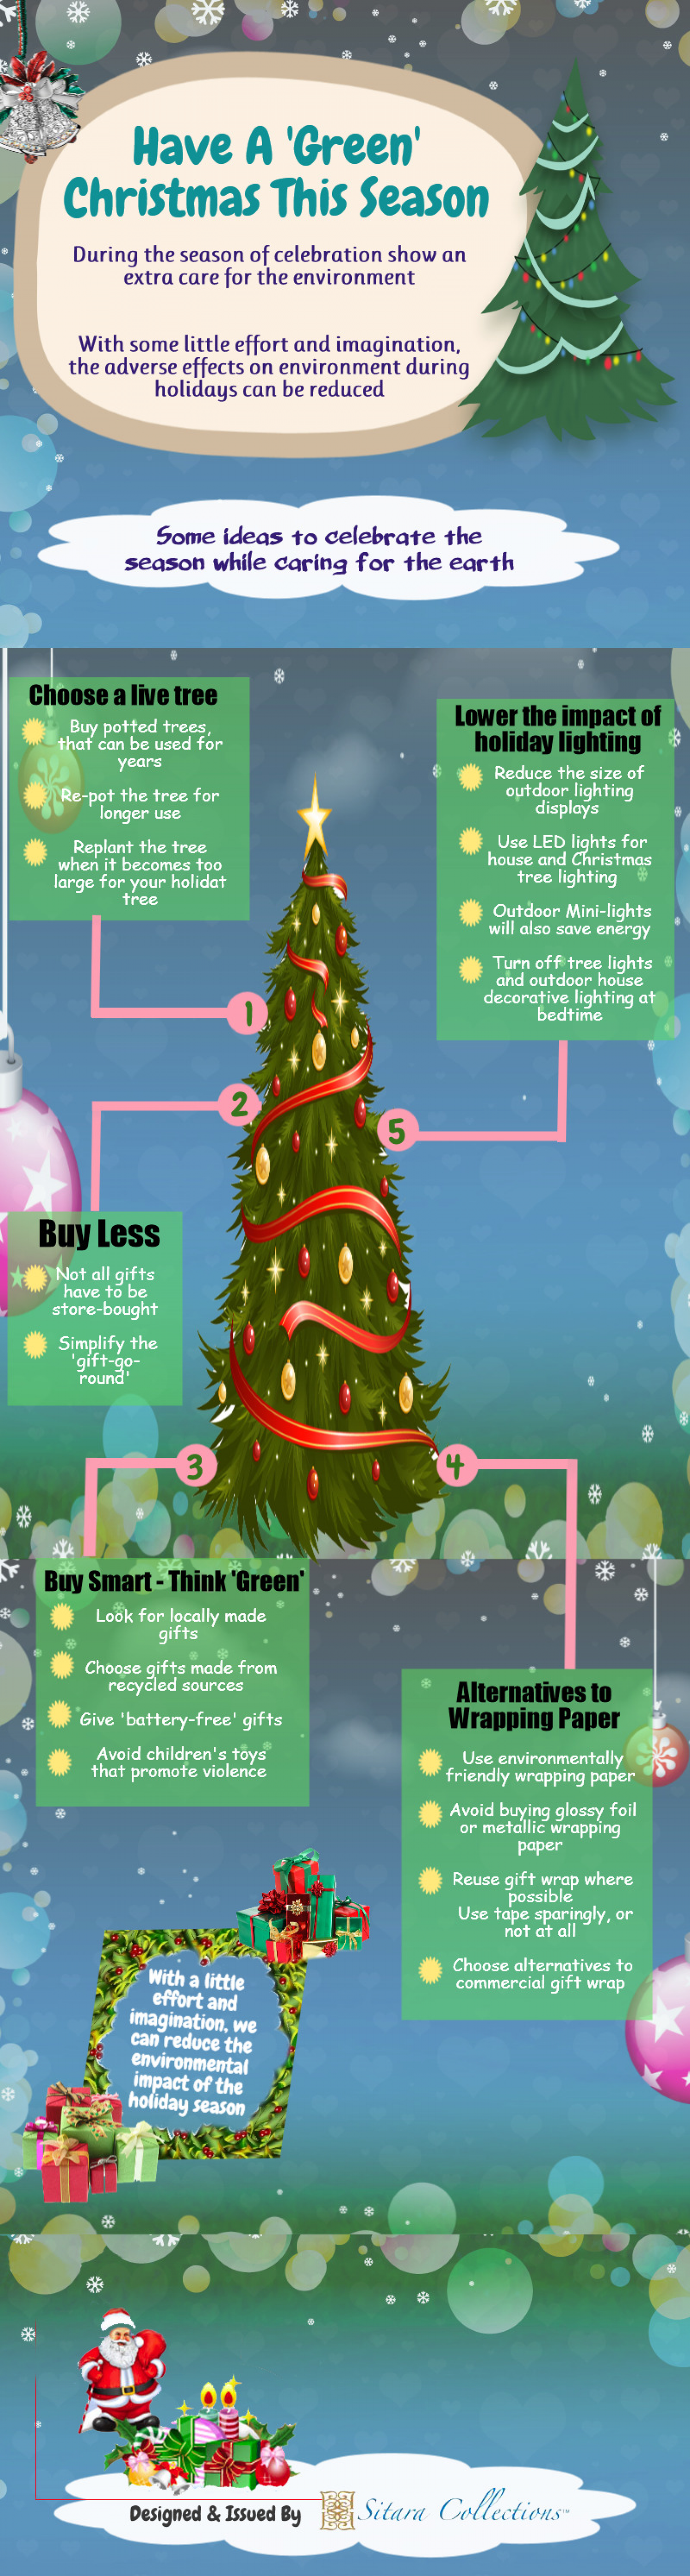 Have A Green Christmas This Season Infographic